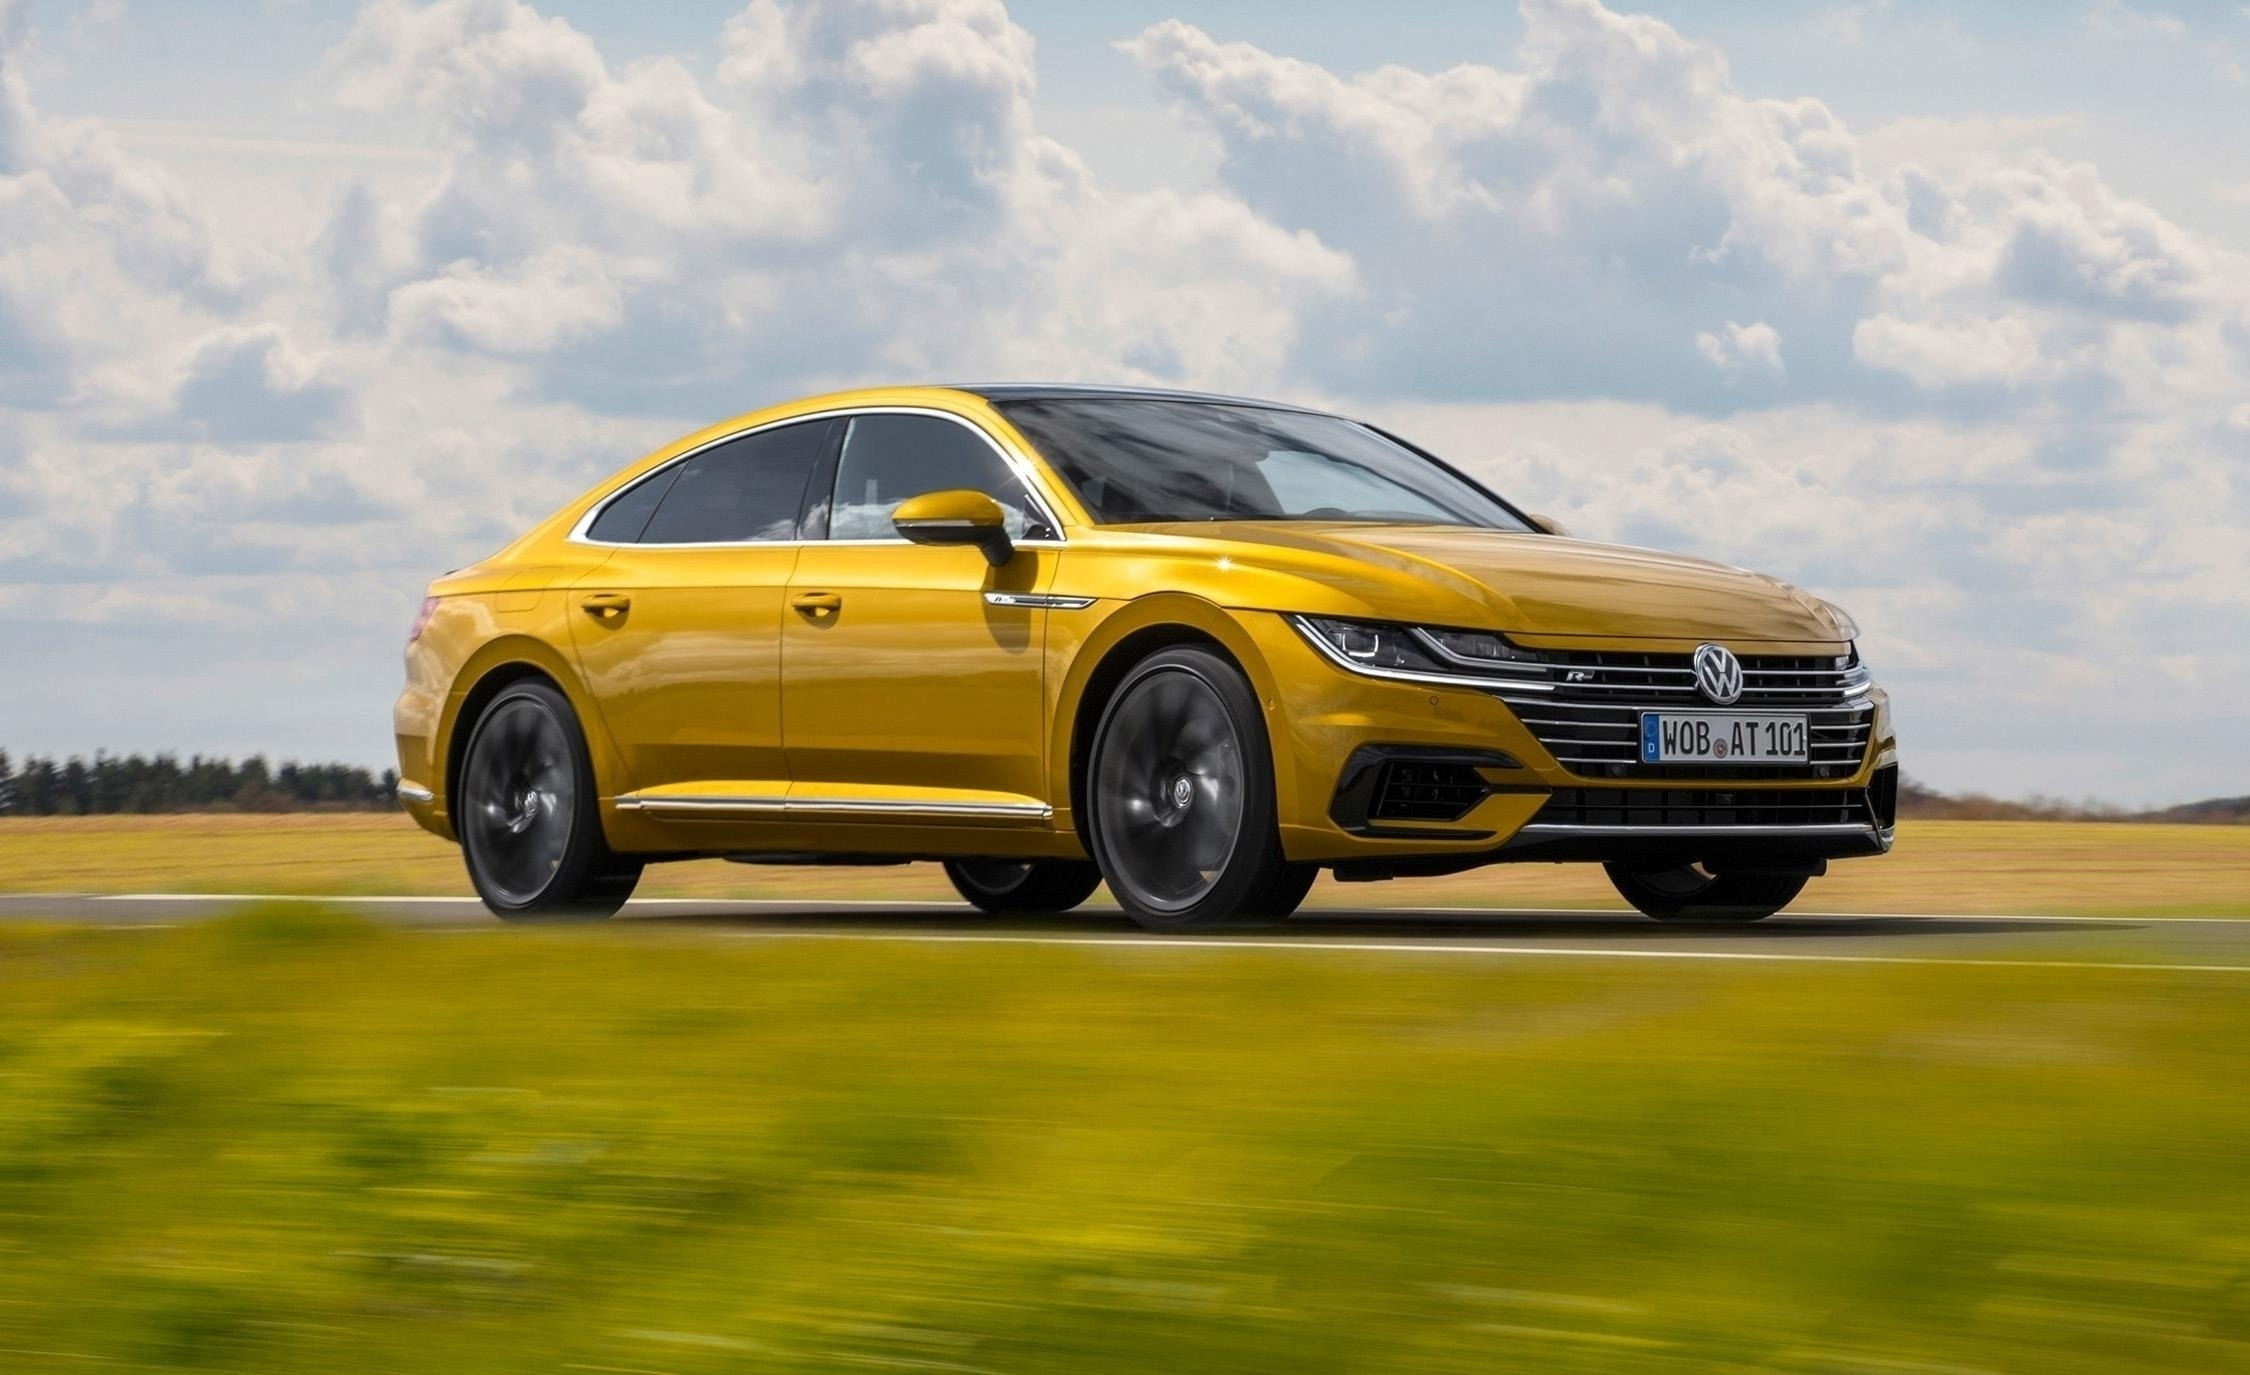 94 The Next Generation Vw Cc Rumors